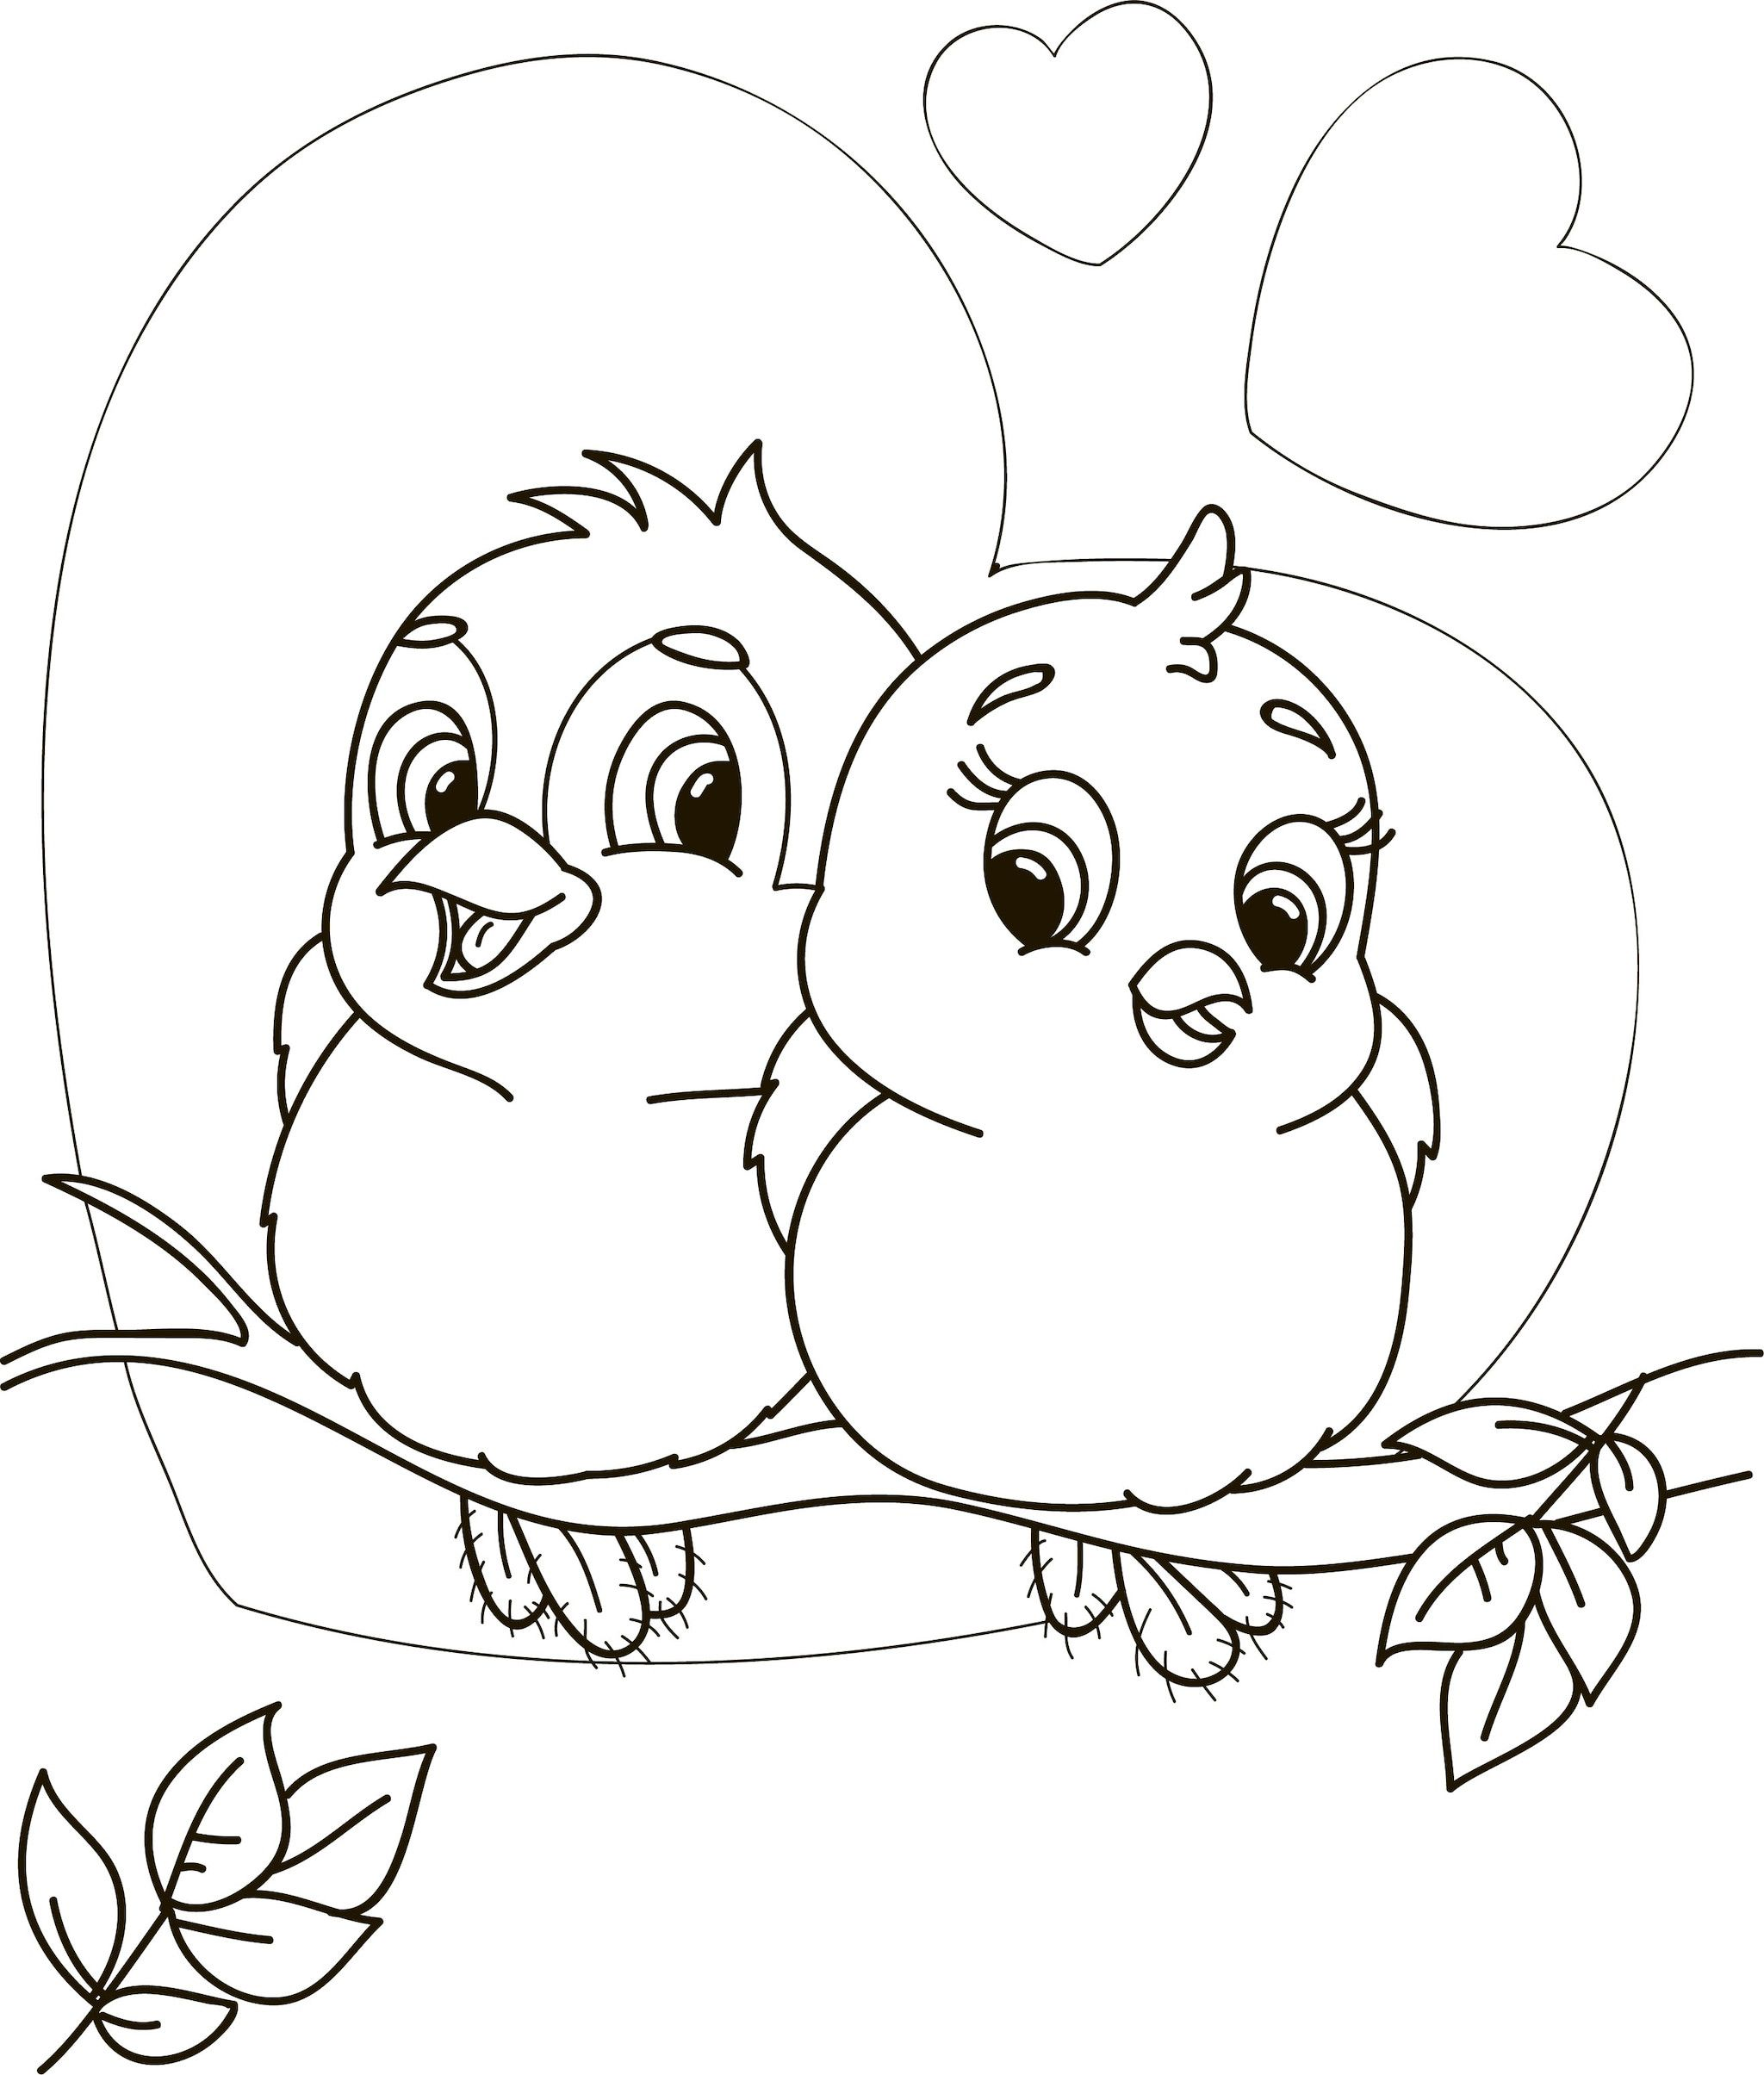 Pin Di Ig Princessbooty69 Su Coloring Pages Nel